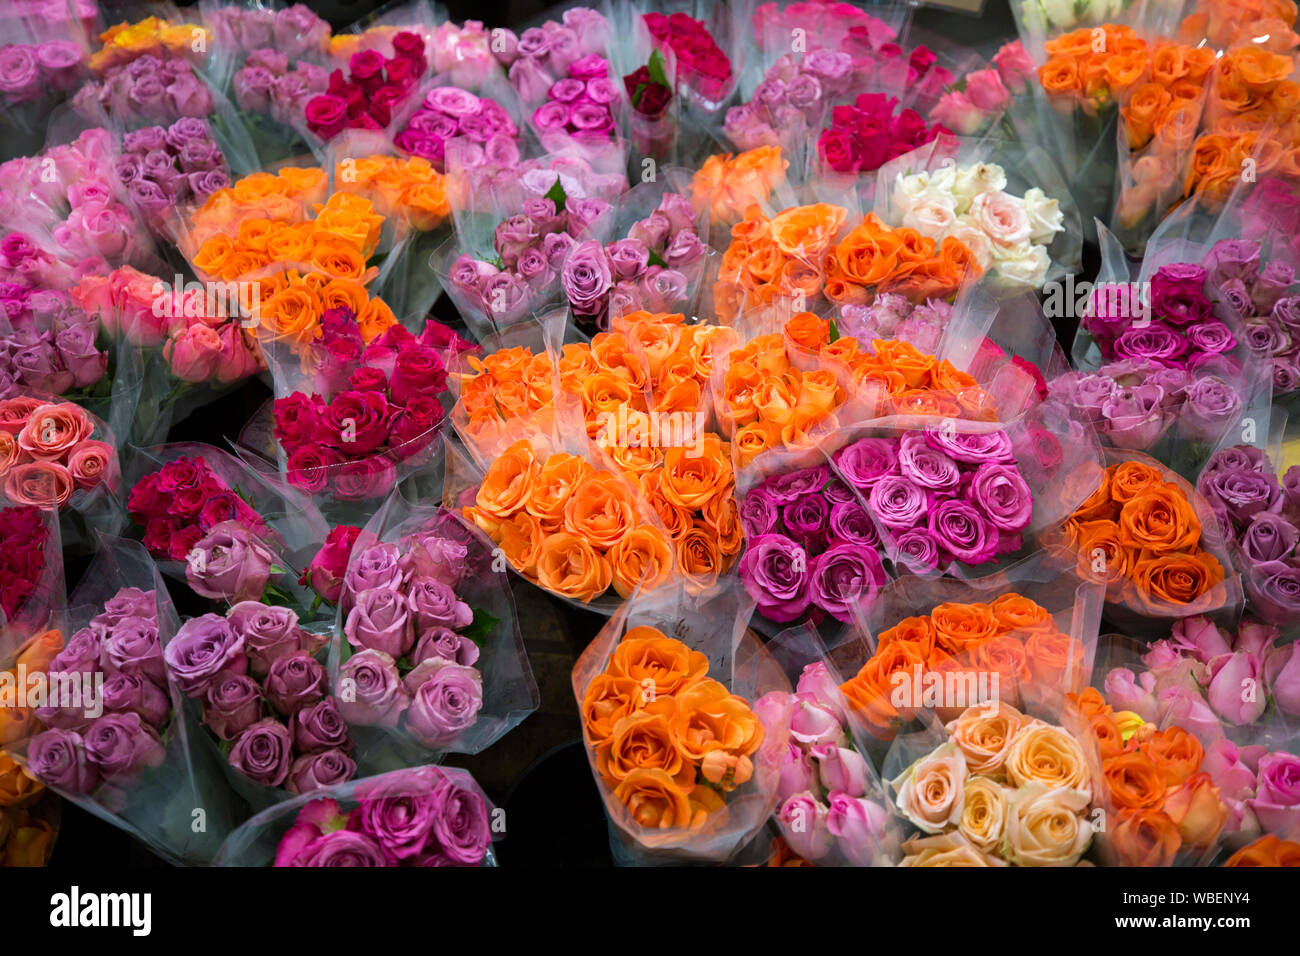 Bunches Of Roses At Florist S Market Stall Orange Red And